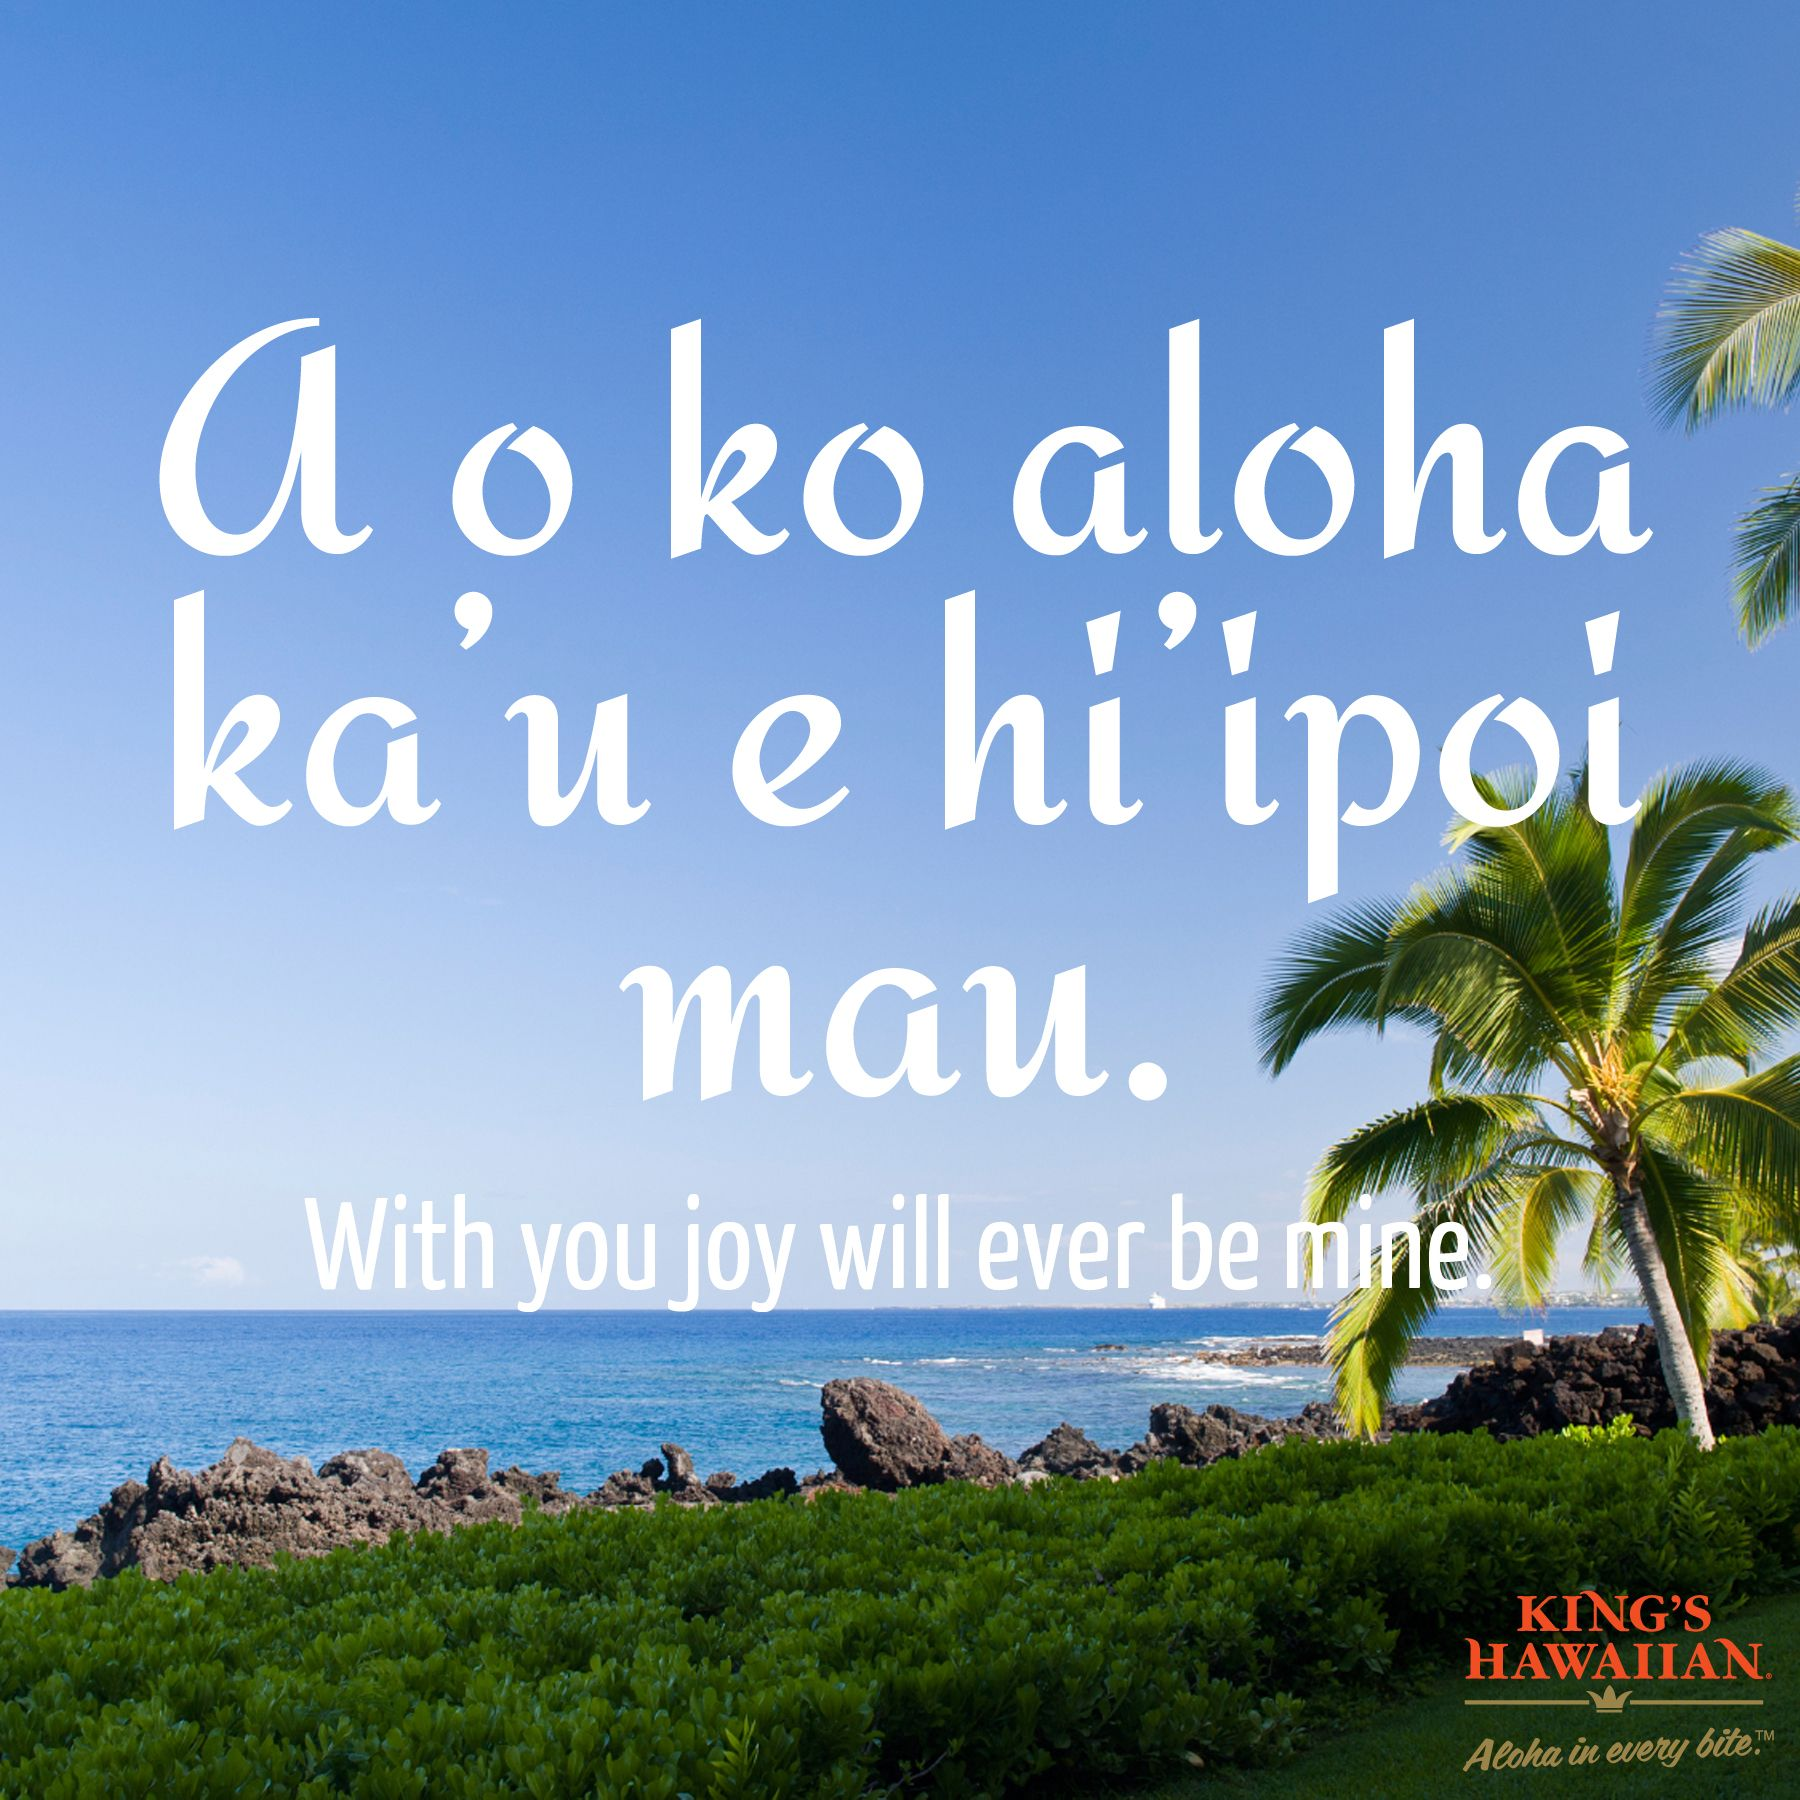 How do you translate Hawaiian words to English?